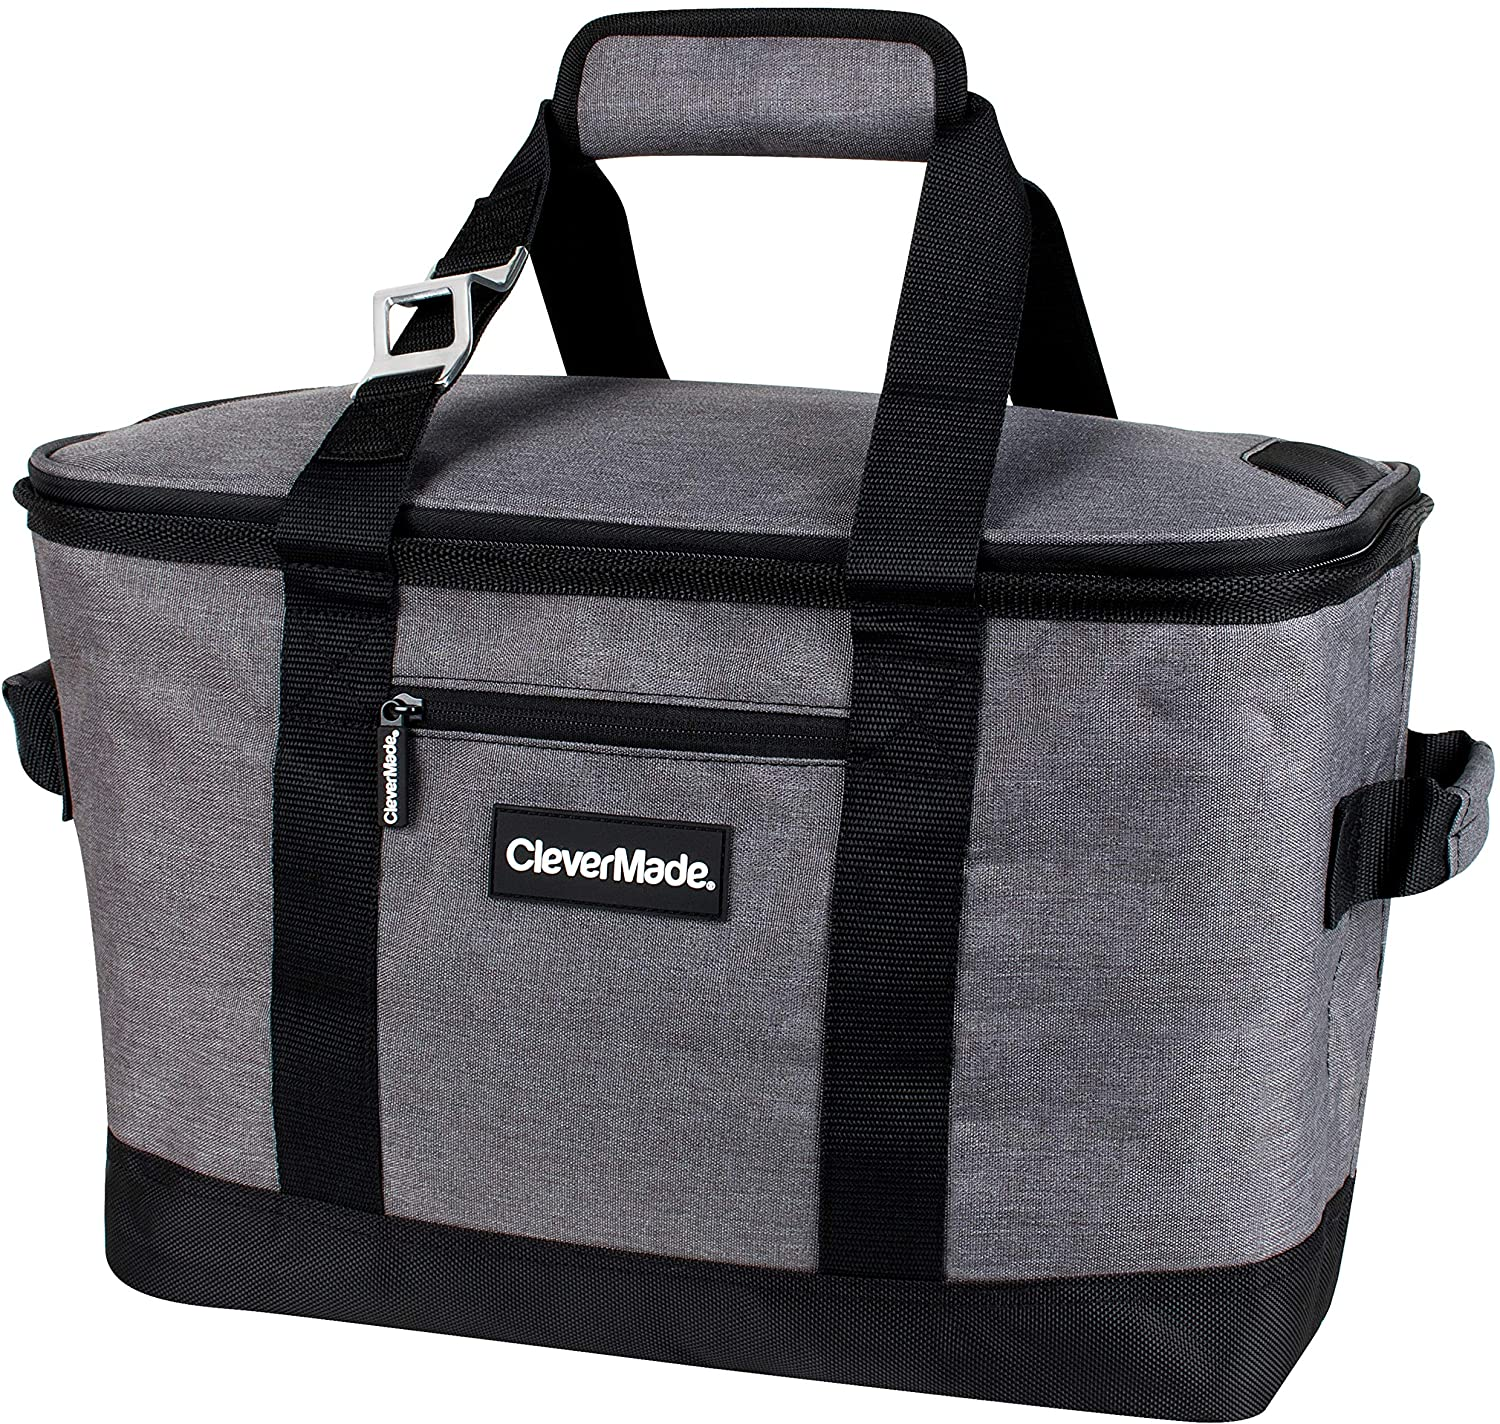 CleverMade Soft Sided Collapsible Cooler Bag